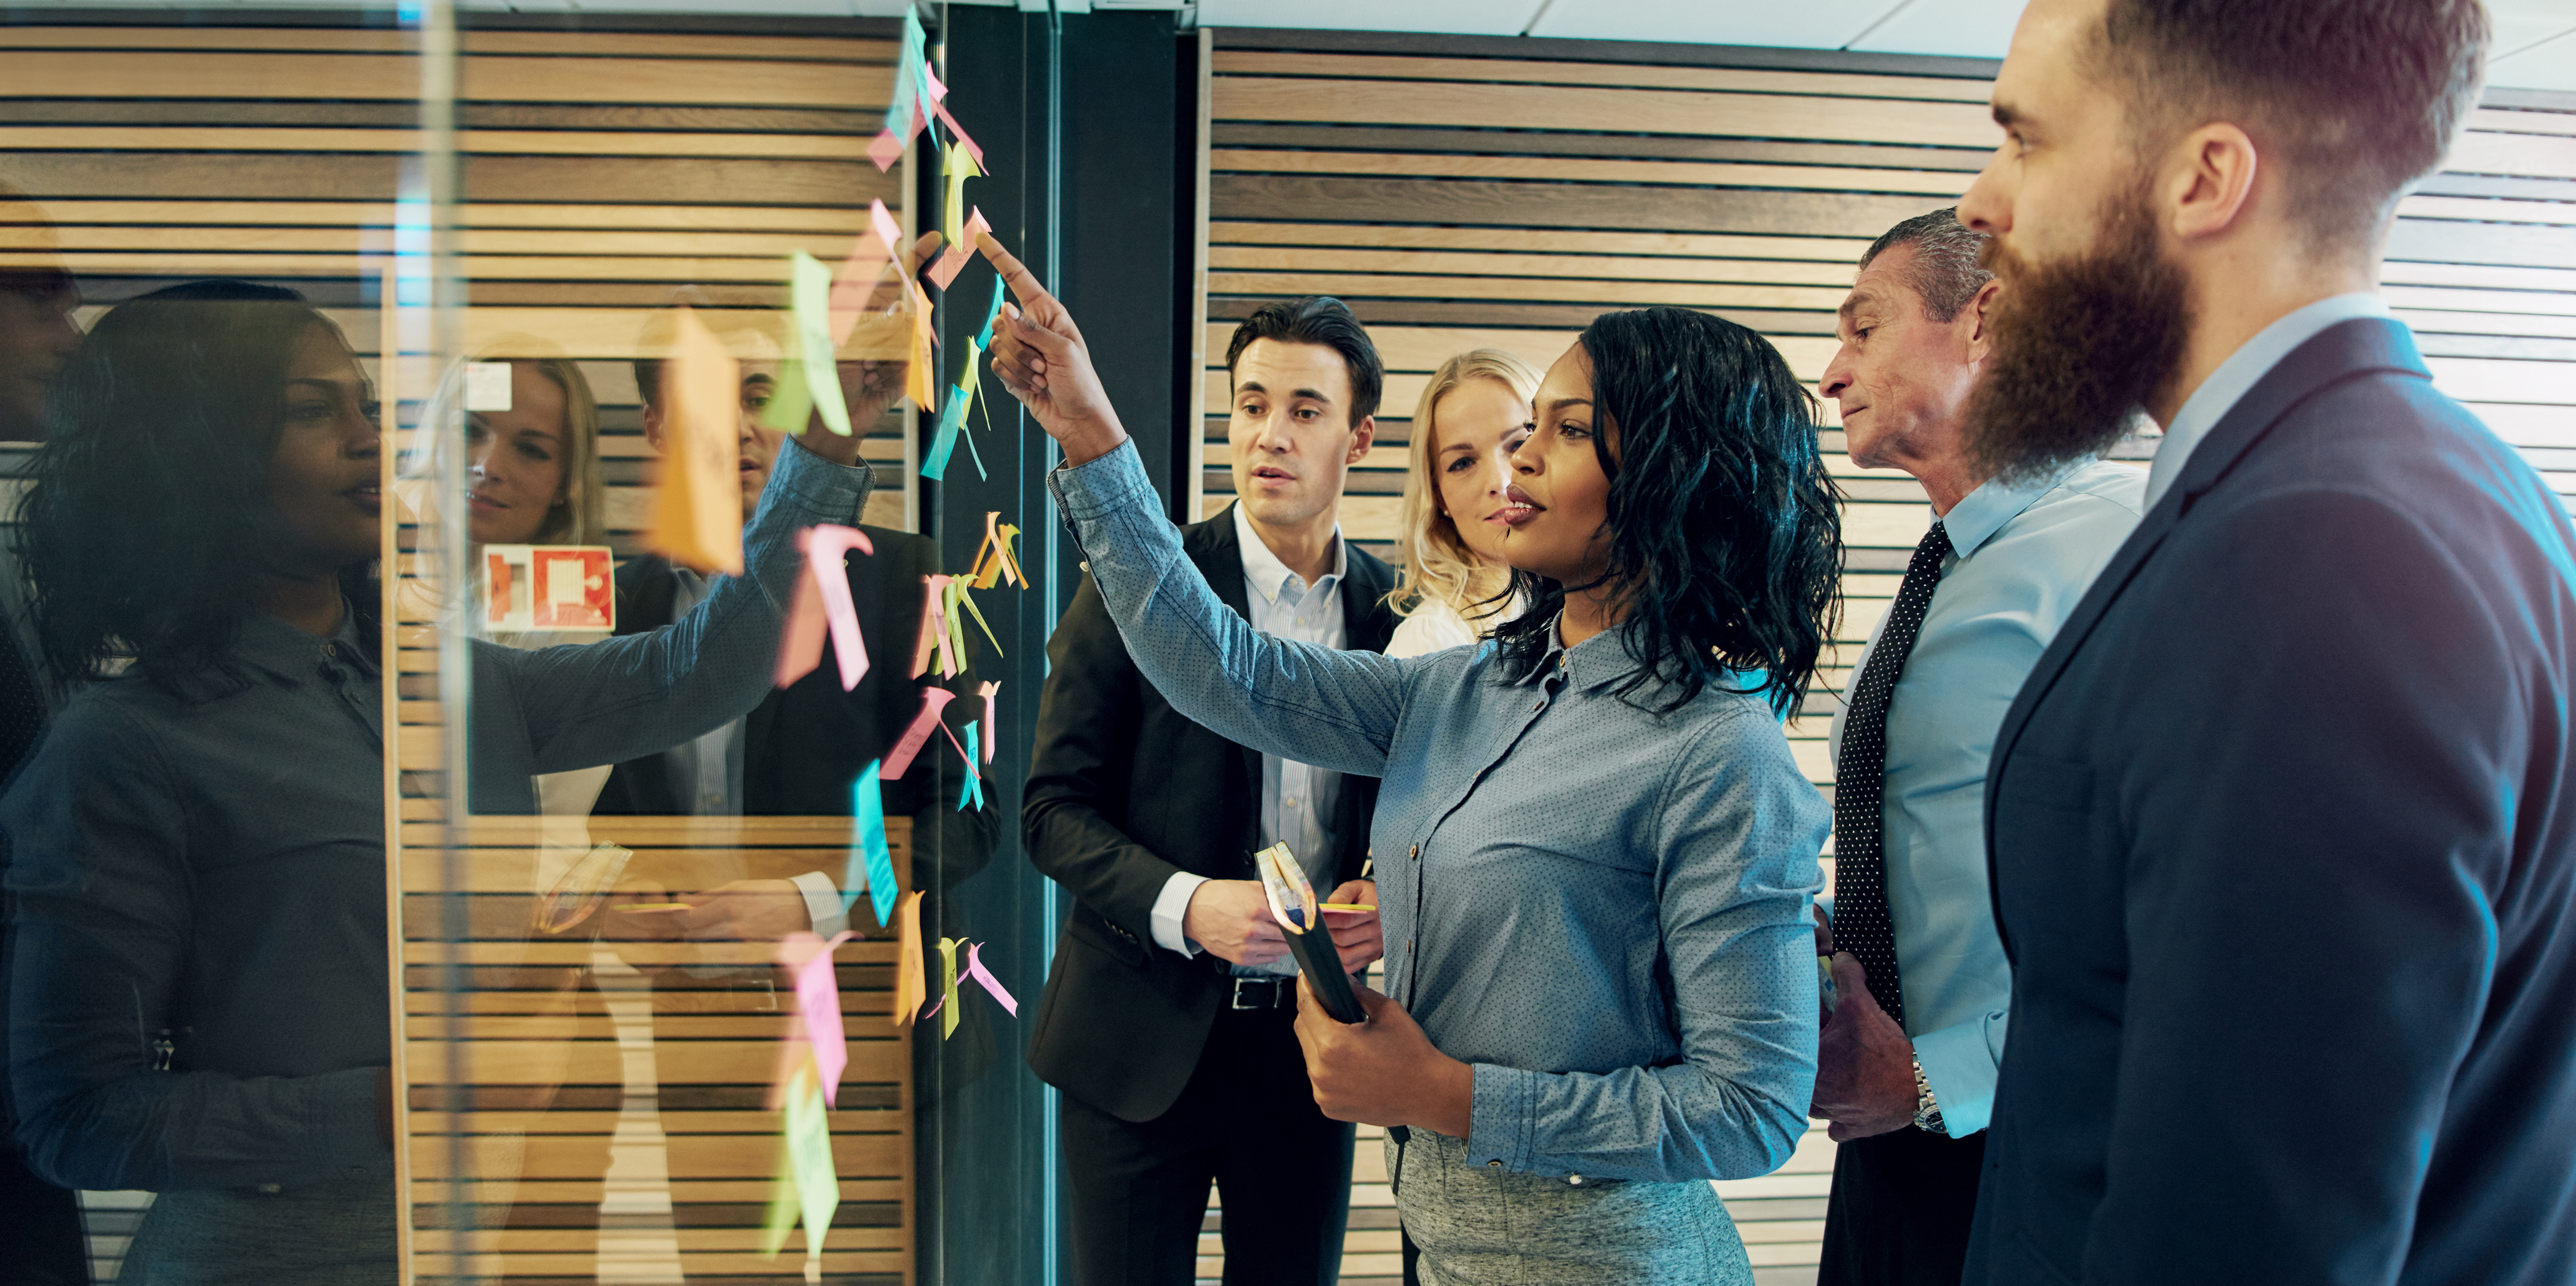 Creative group of business people brainstorming putting sticky notes on glass wall in office.